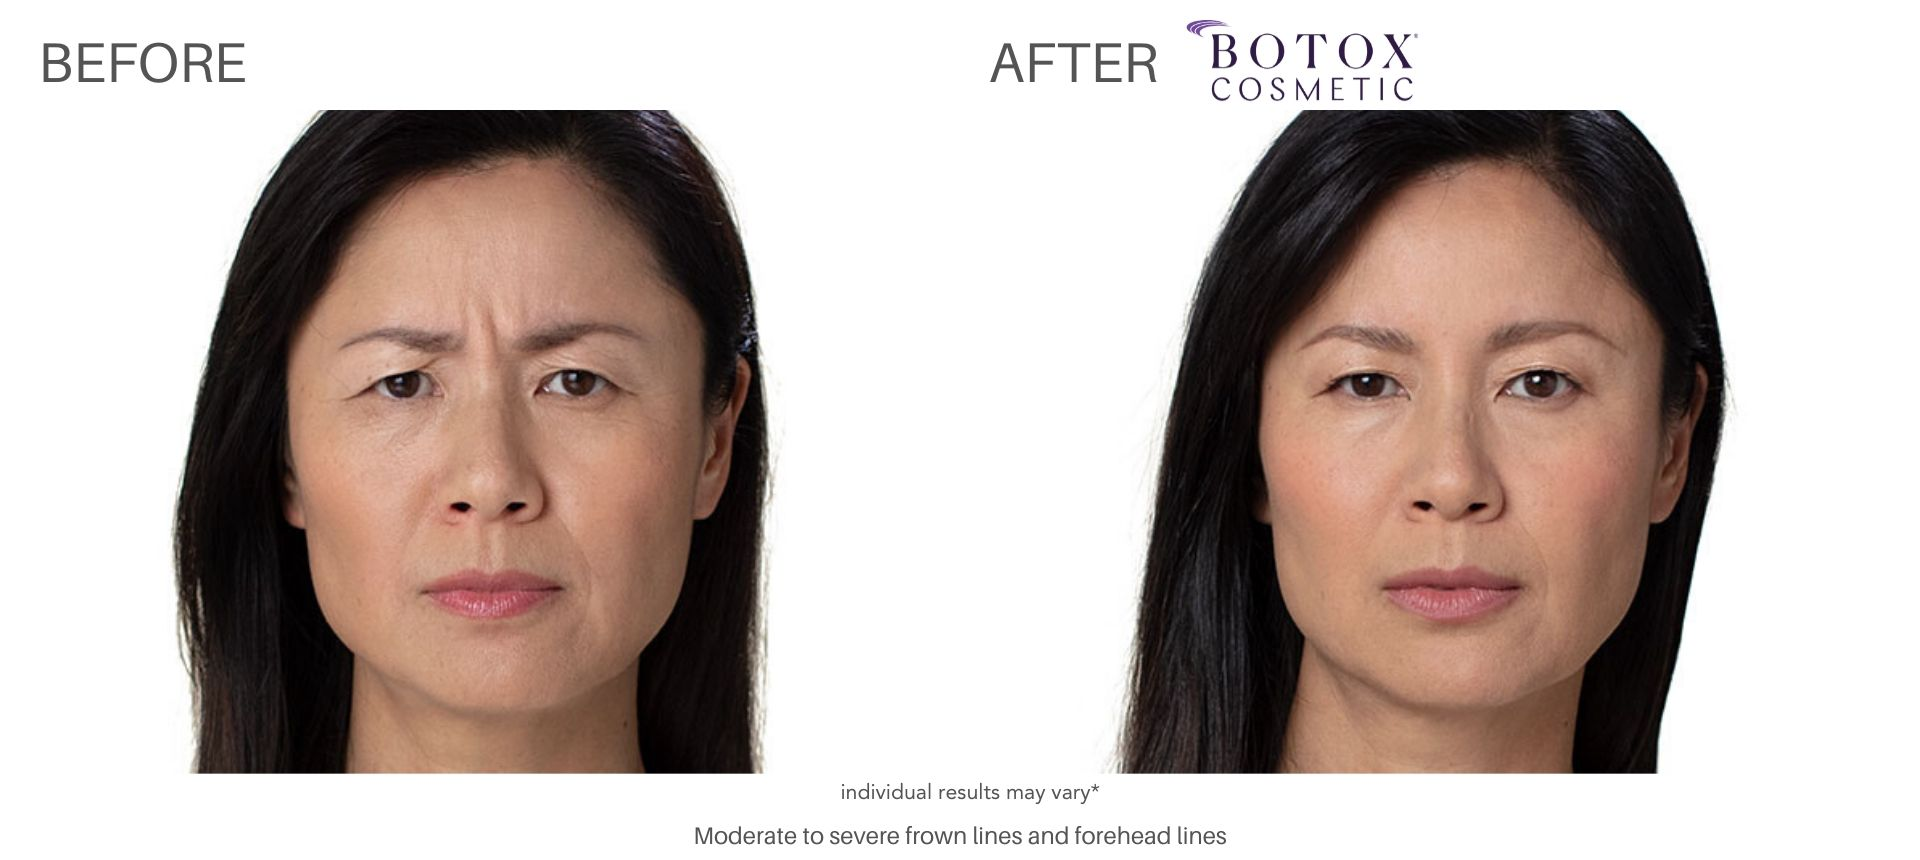 botox cosmetic before and after Vernon Hills Ritacca Cosmetic Surgery